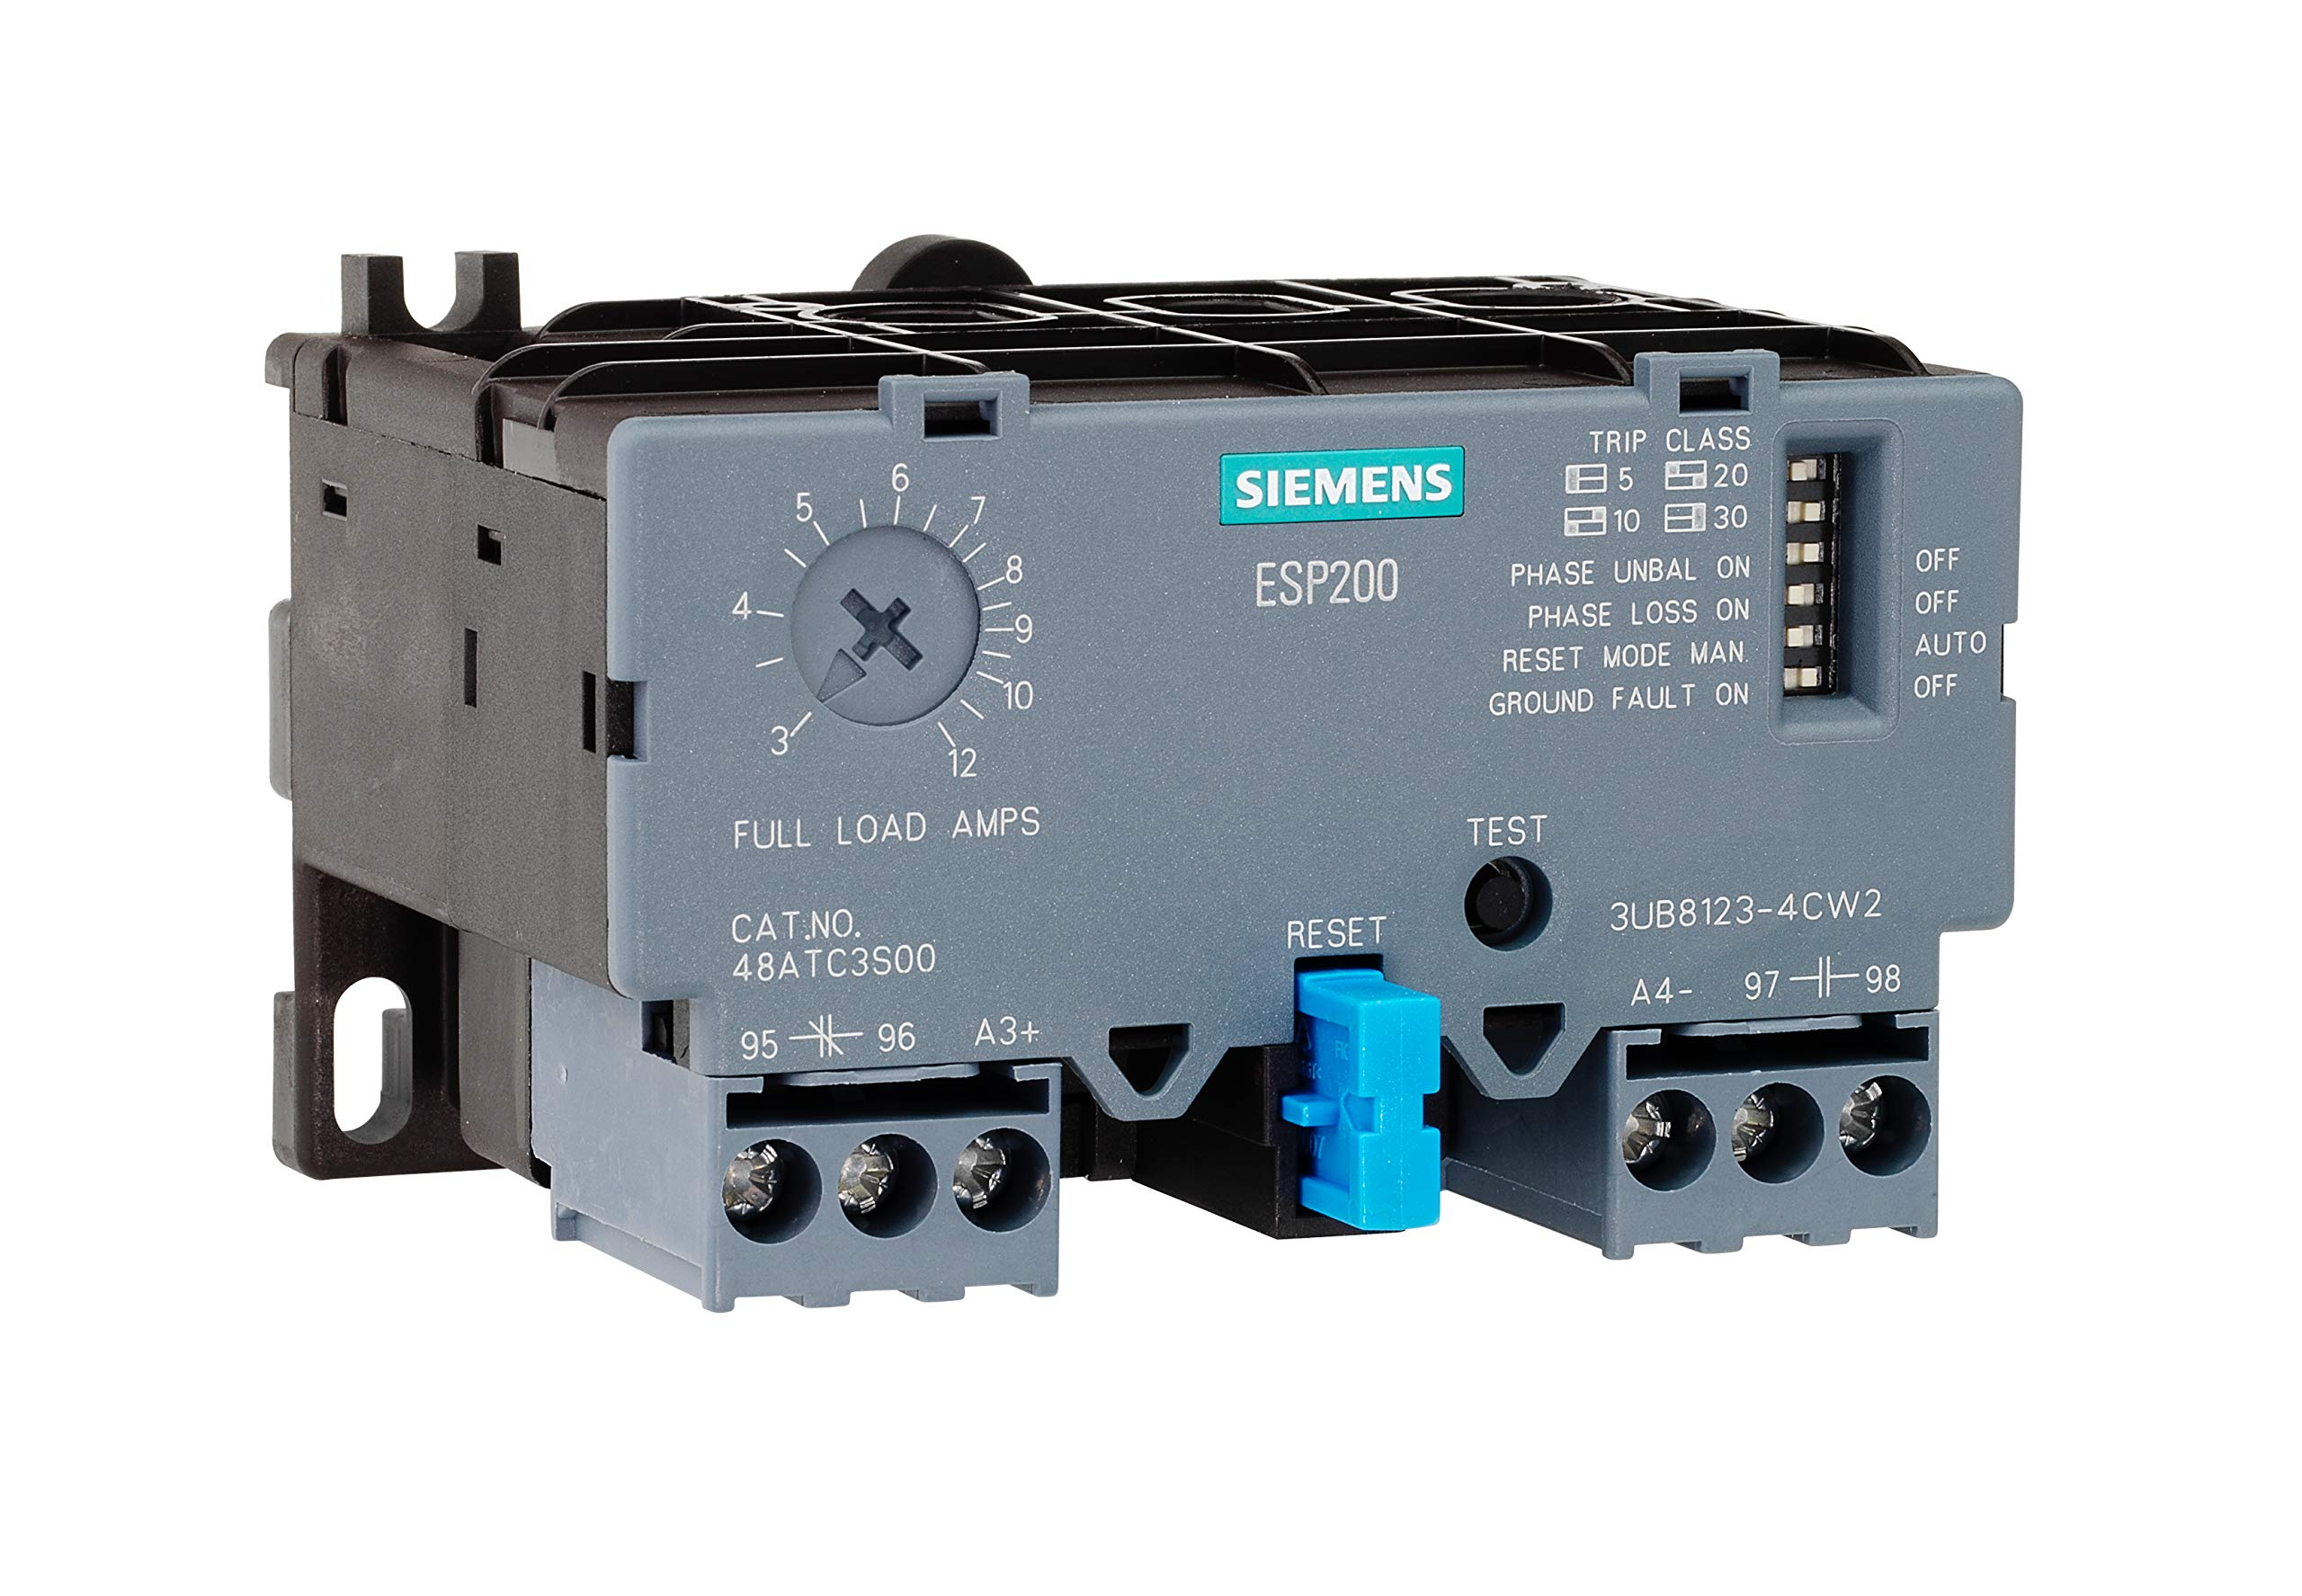 Siemens 3UB81234DW2 Solid State Overload Relay, ESP200 Catalog No. 48ATD3S00, 5.5 to 22A, Frame Size A1, 3-Phase, Class 5/10/20/30 Adjustable, Manual/Automatic Reset by SIEMENS